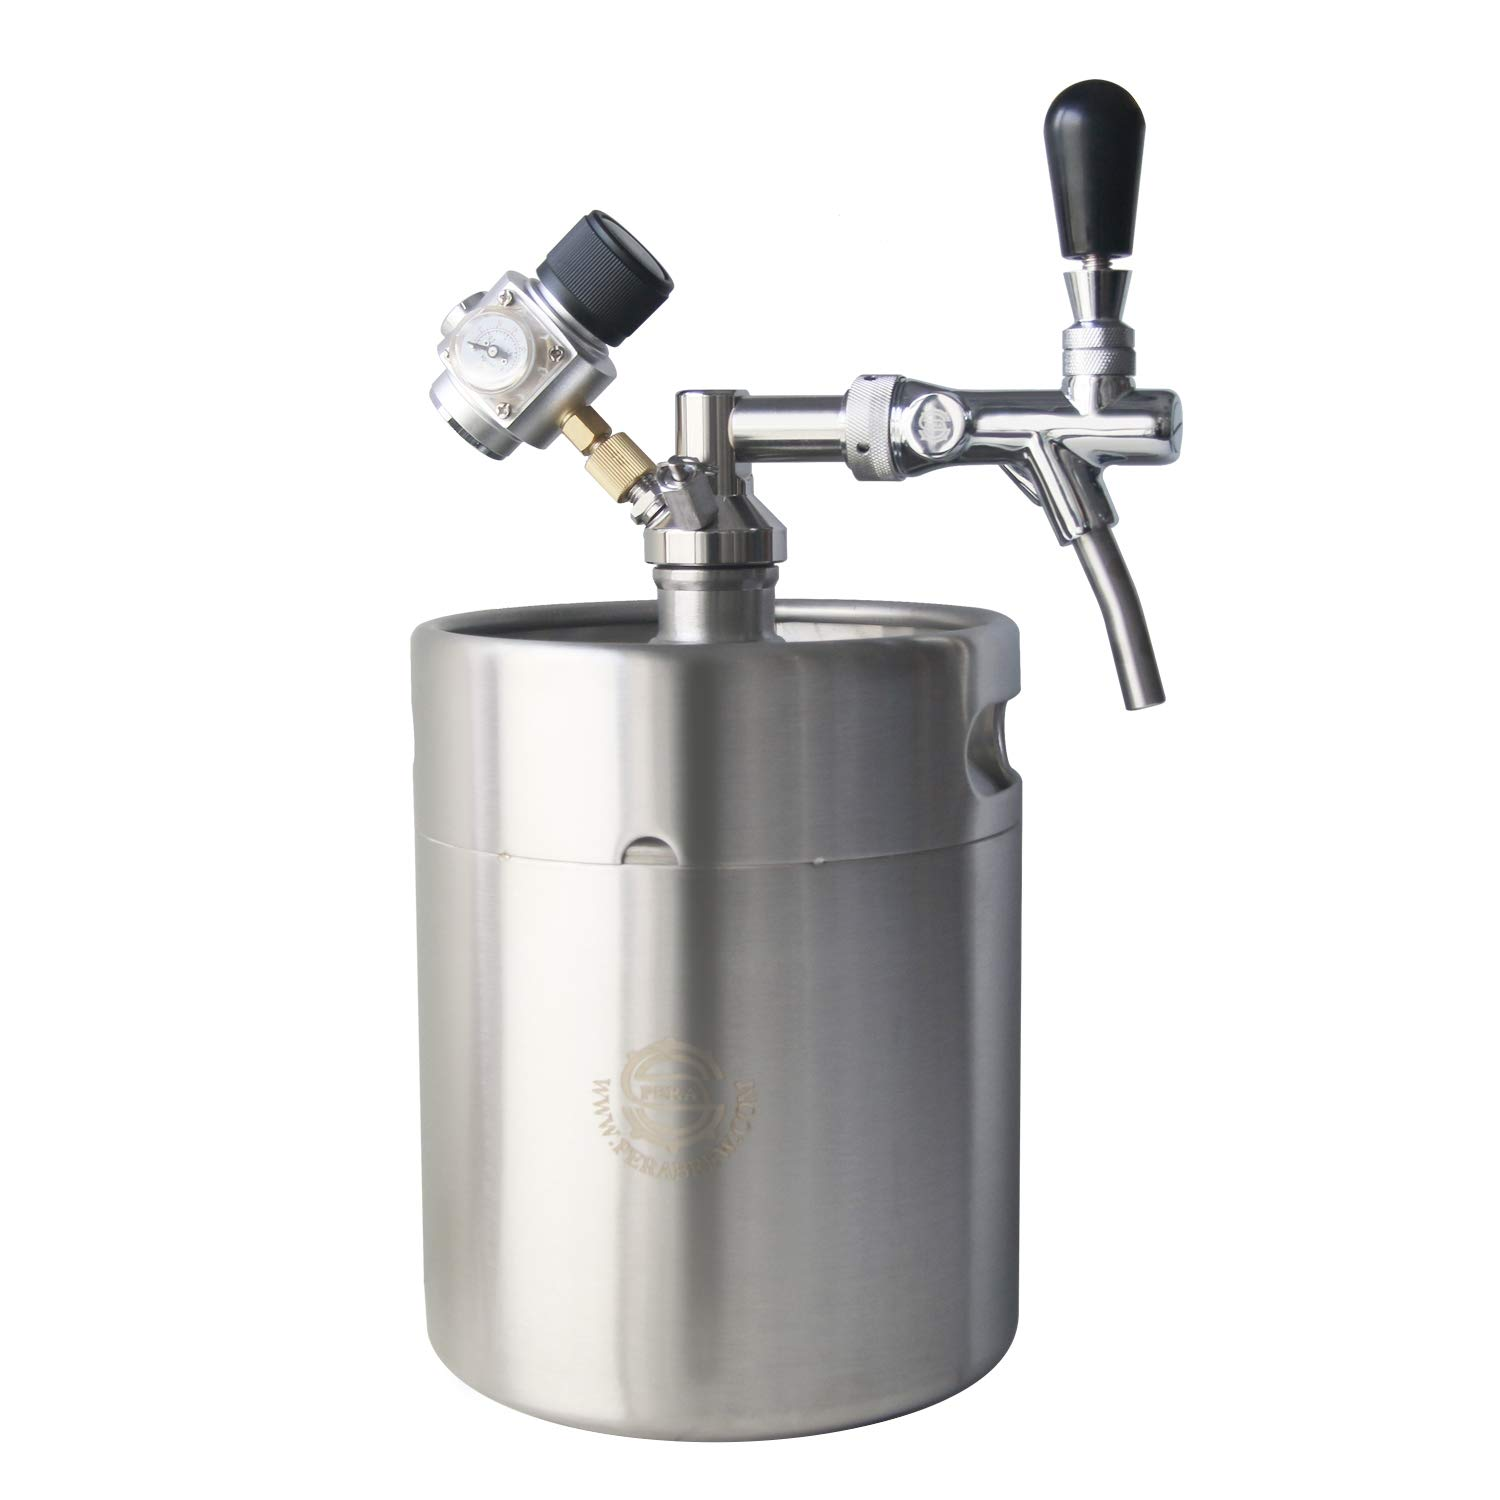 Beer Growler Mini Keg Tap - PERA Brand Including Beer Adjustable Faucet, 5L Mini Keg, CO2 Keg Charger, Keg Dispenser, Faucet Wrench for Home Brew Beer Kegging